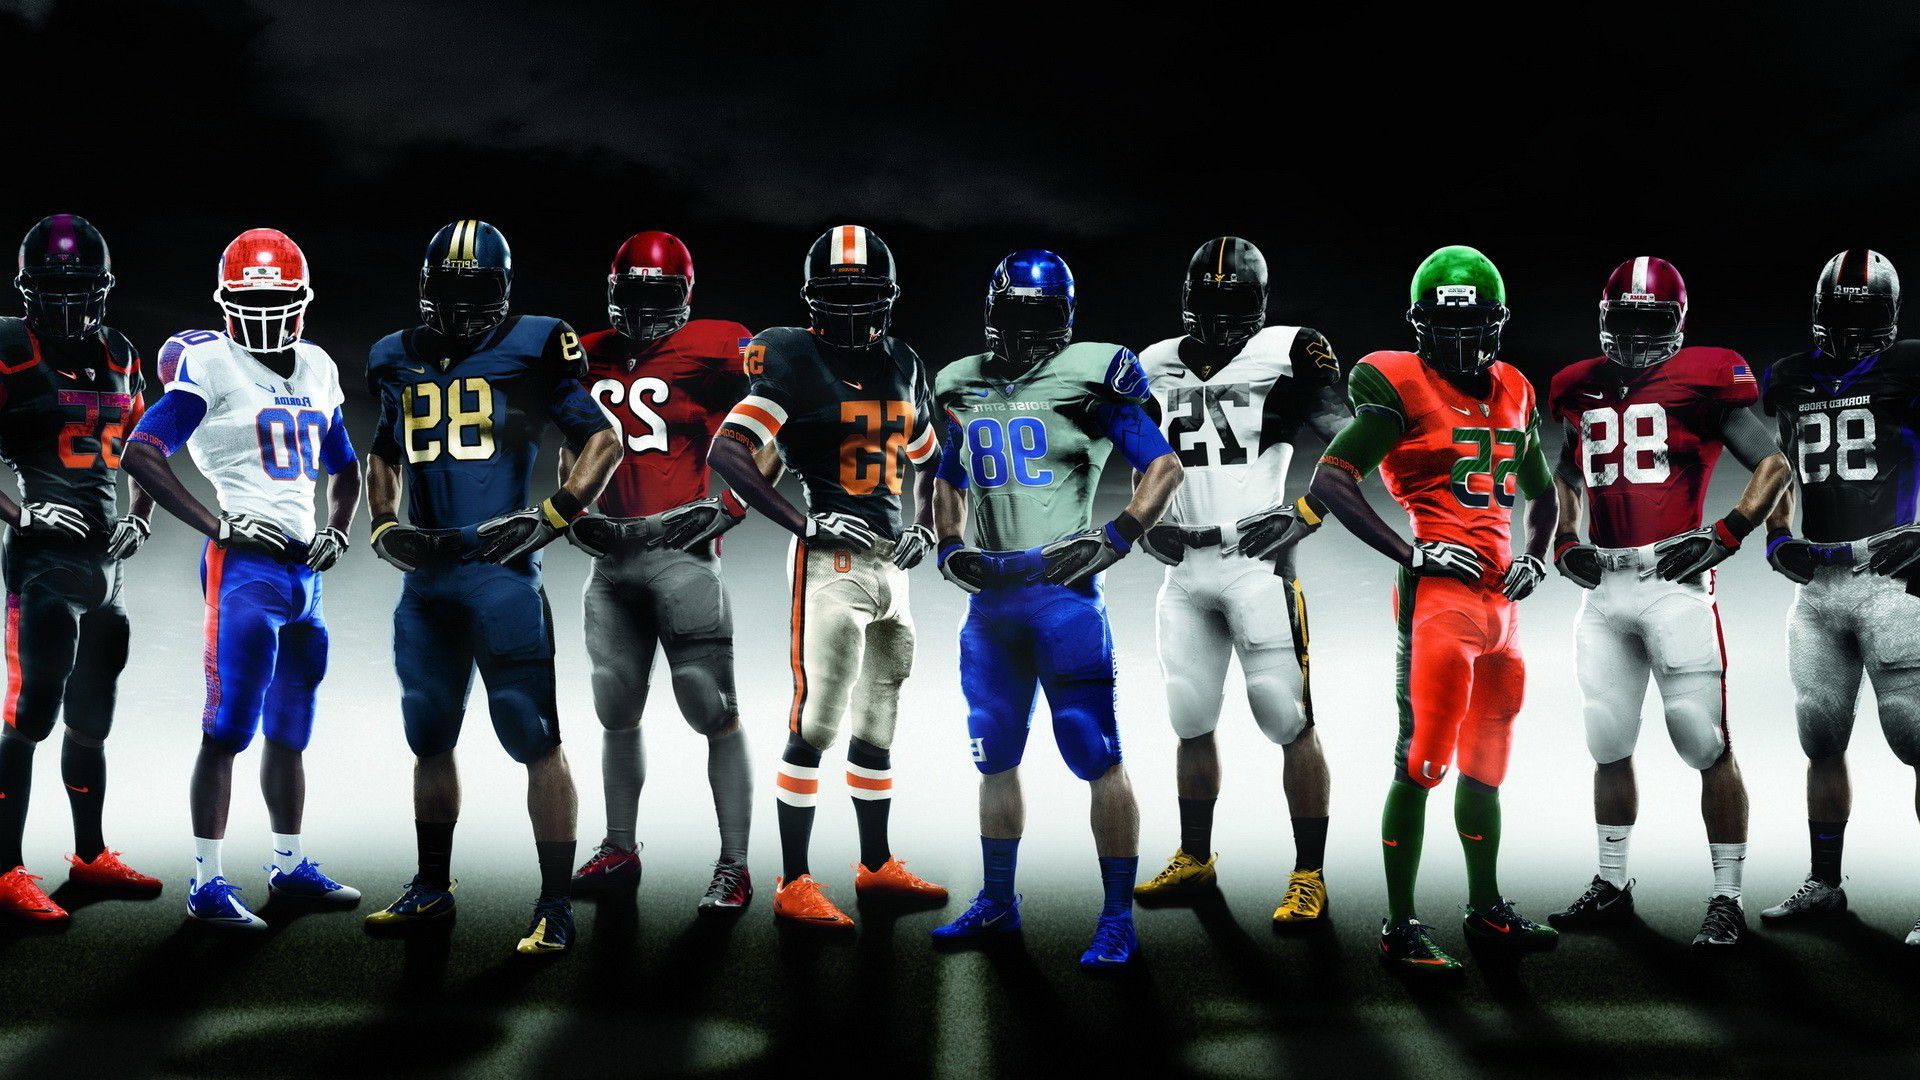 1920x1080 College Football Team Wallpapers Tags: college football teams